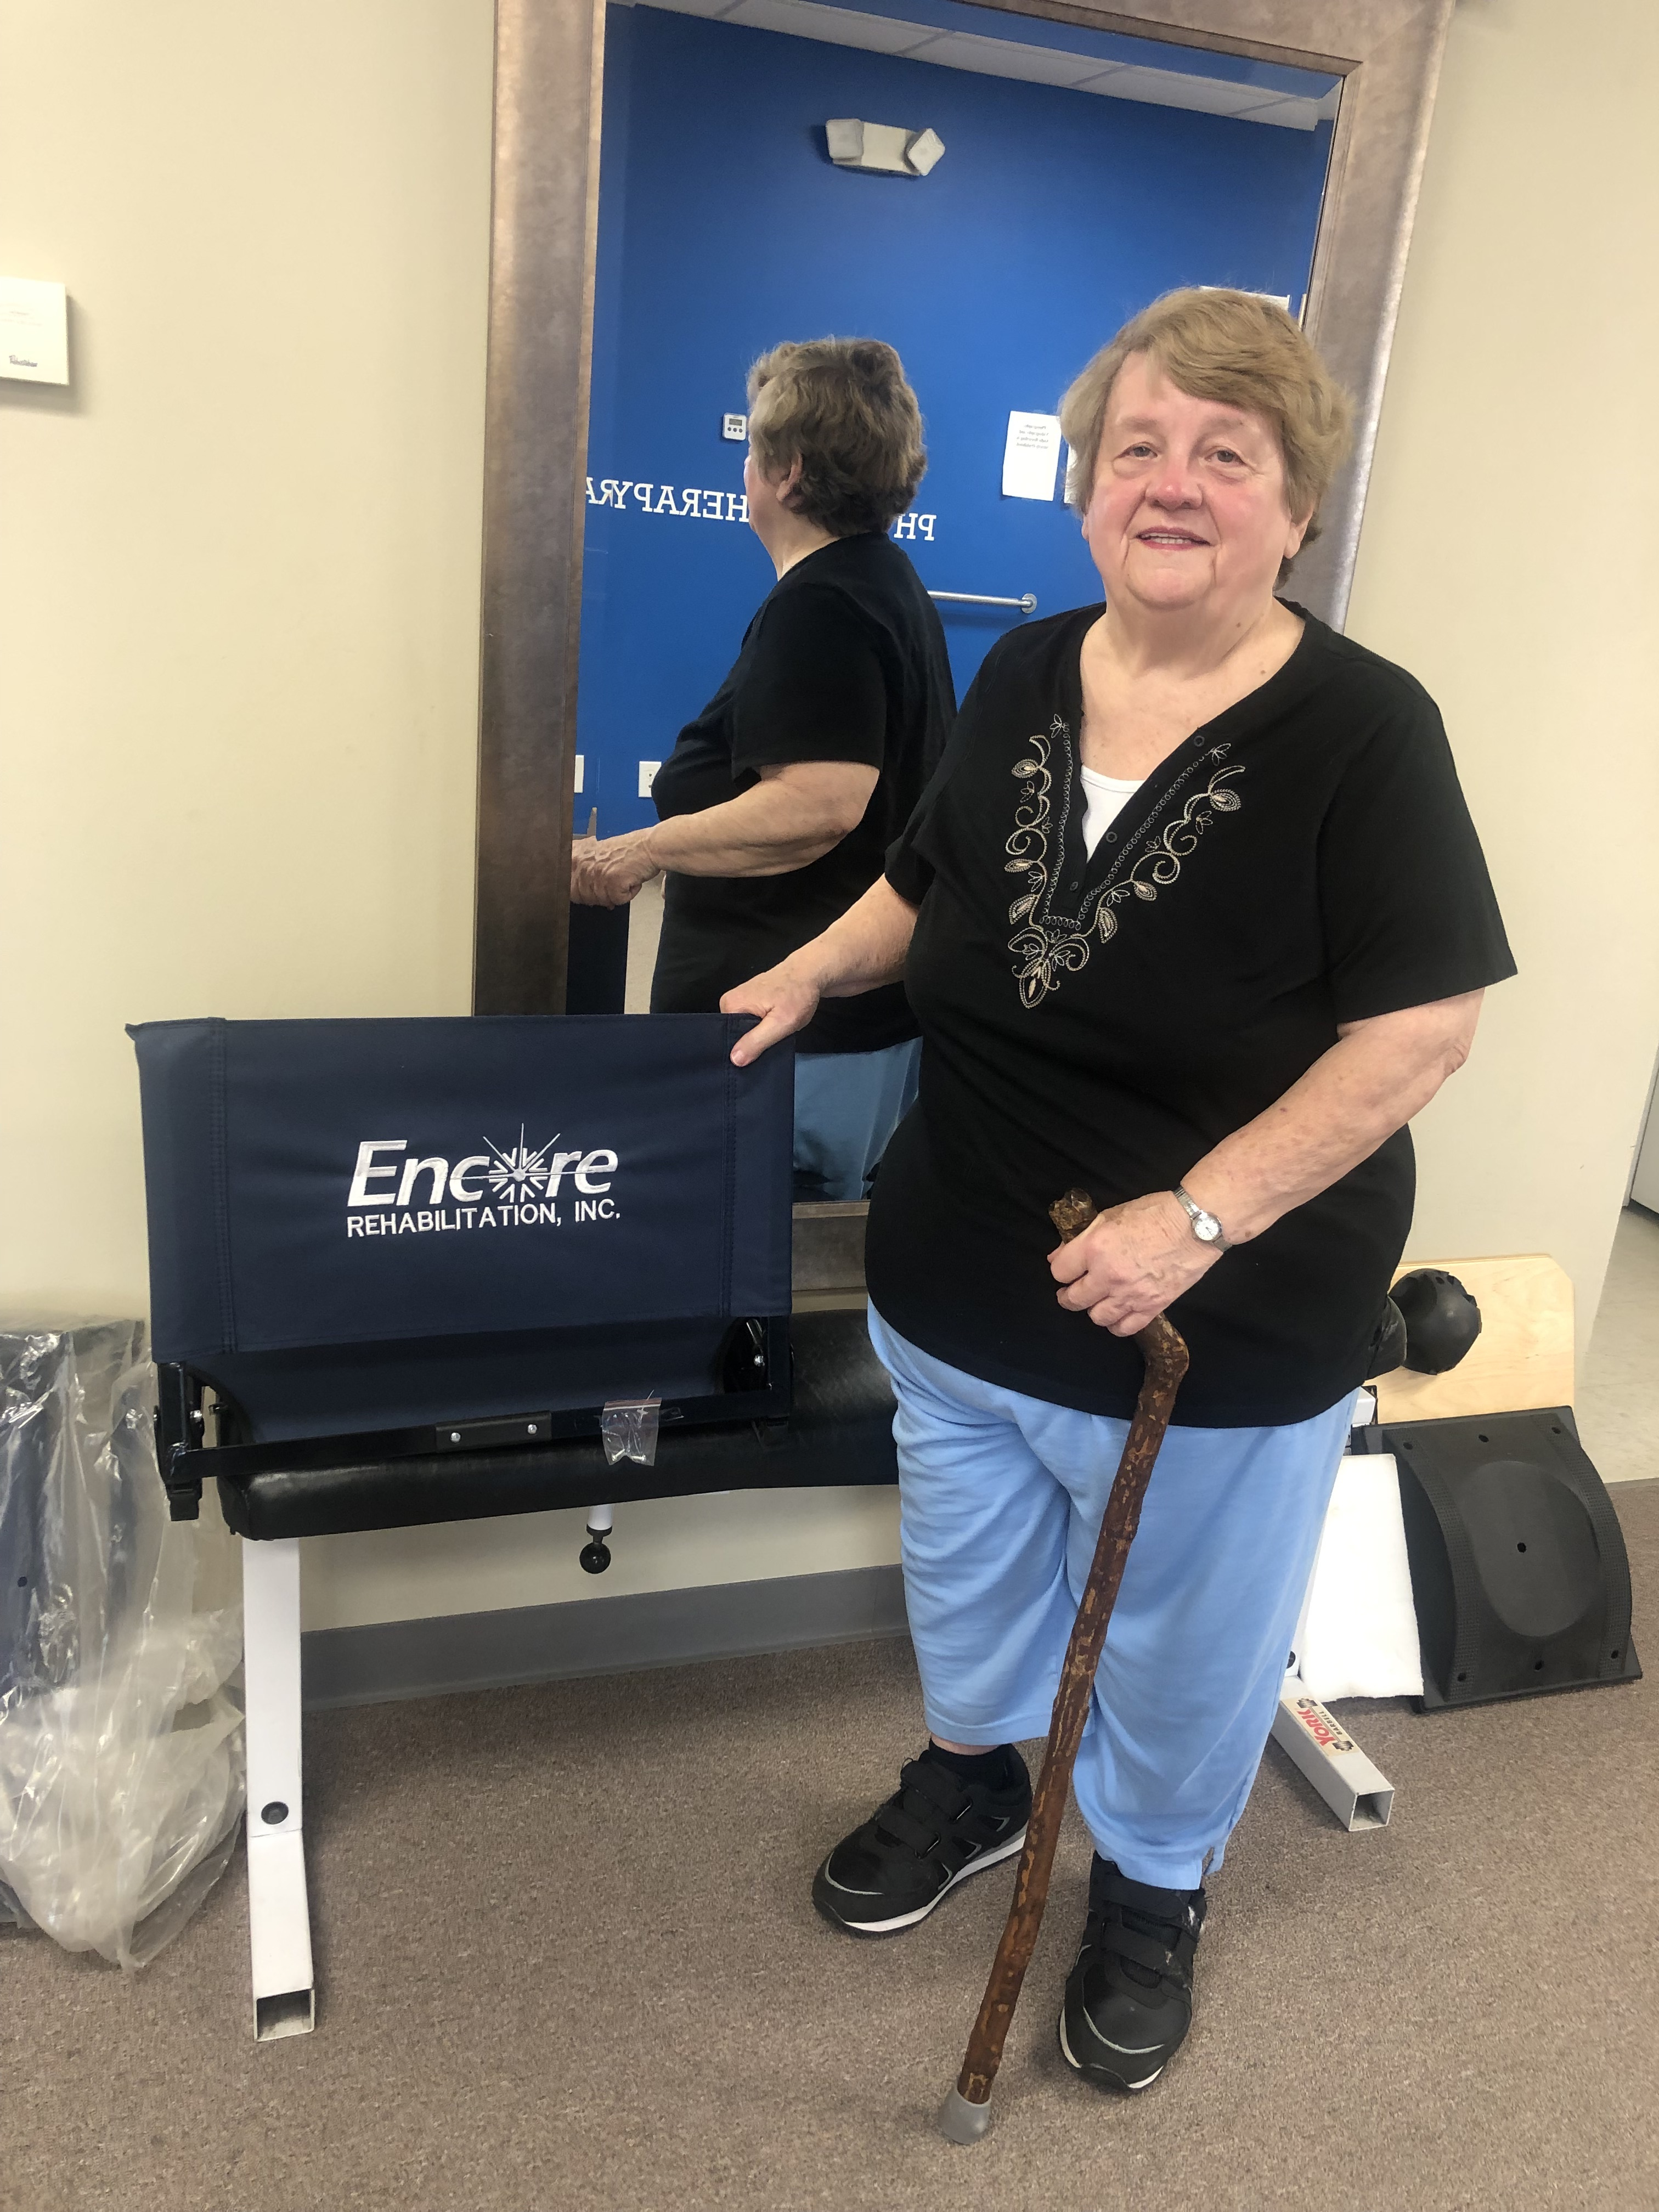 Sarah Pope has successfully rehab & wins a door prize with #EncoreRehab Clanton